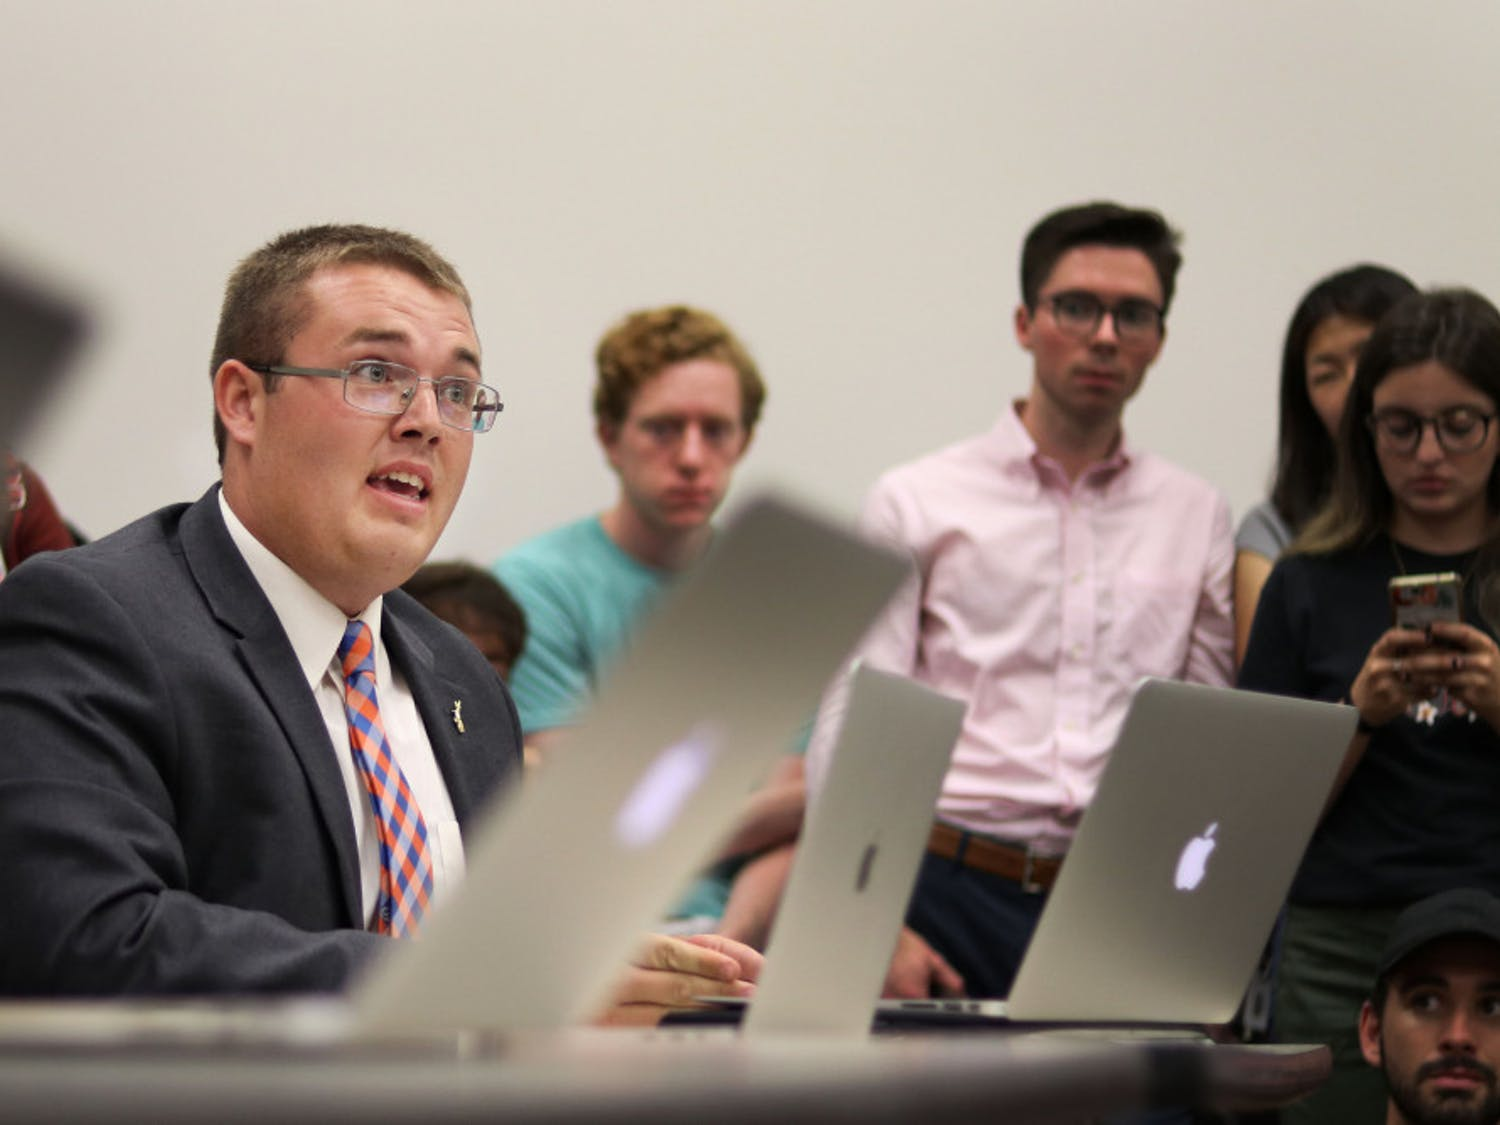 Branden Pearson speaks in defense of Gator Party against allegations of campaign violations Thursday evening at a Student Government Elections Commission meeting at the Levin College of Law. The meeting followed a contentious Senate race between Gator Party and Inspire Party.